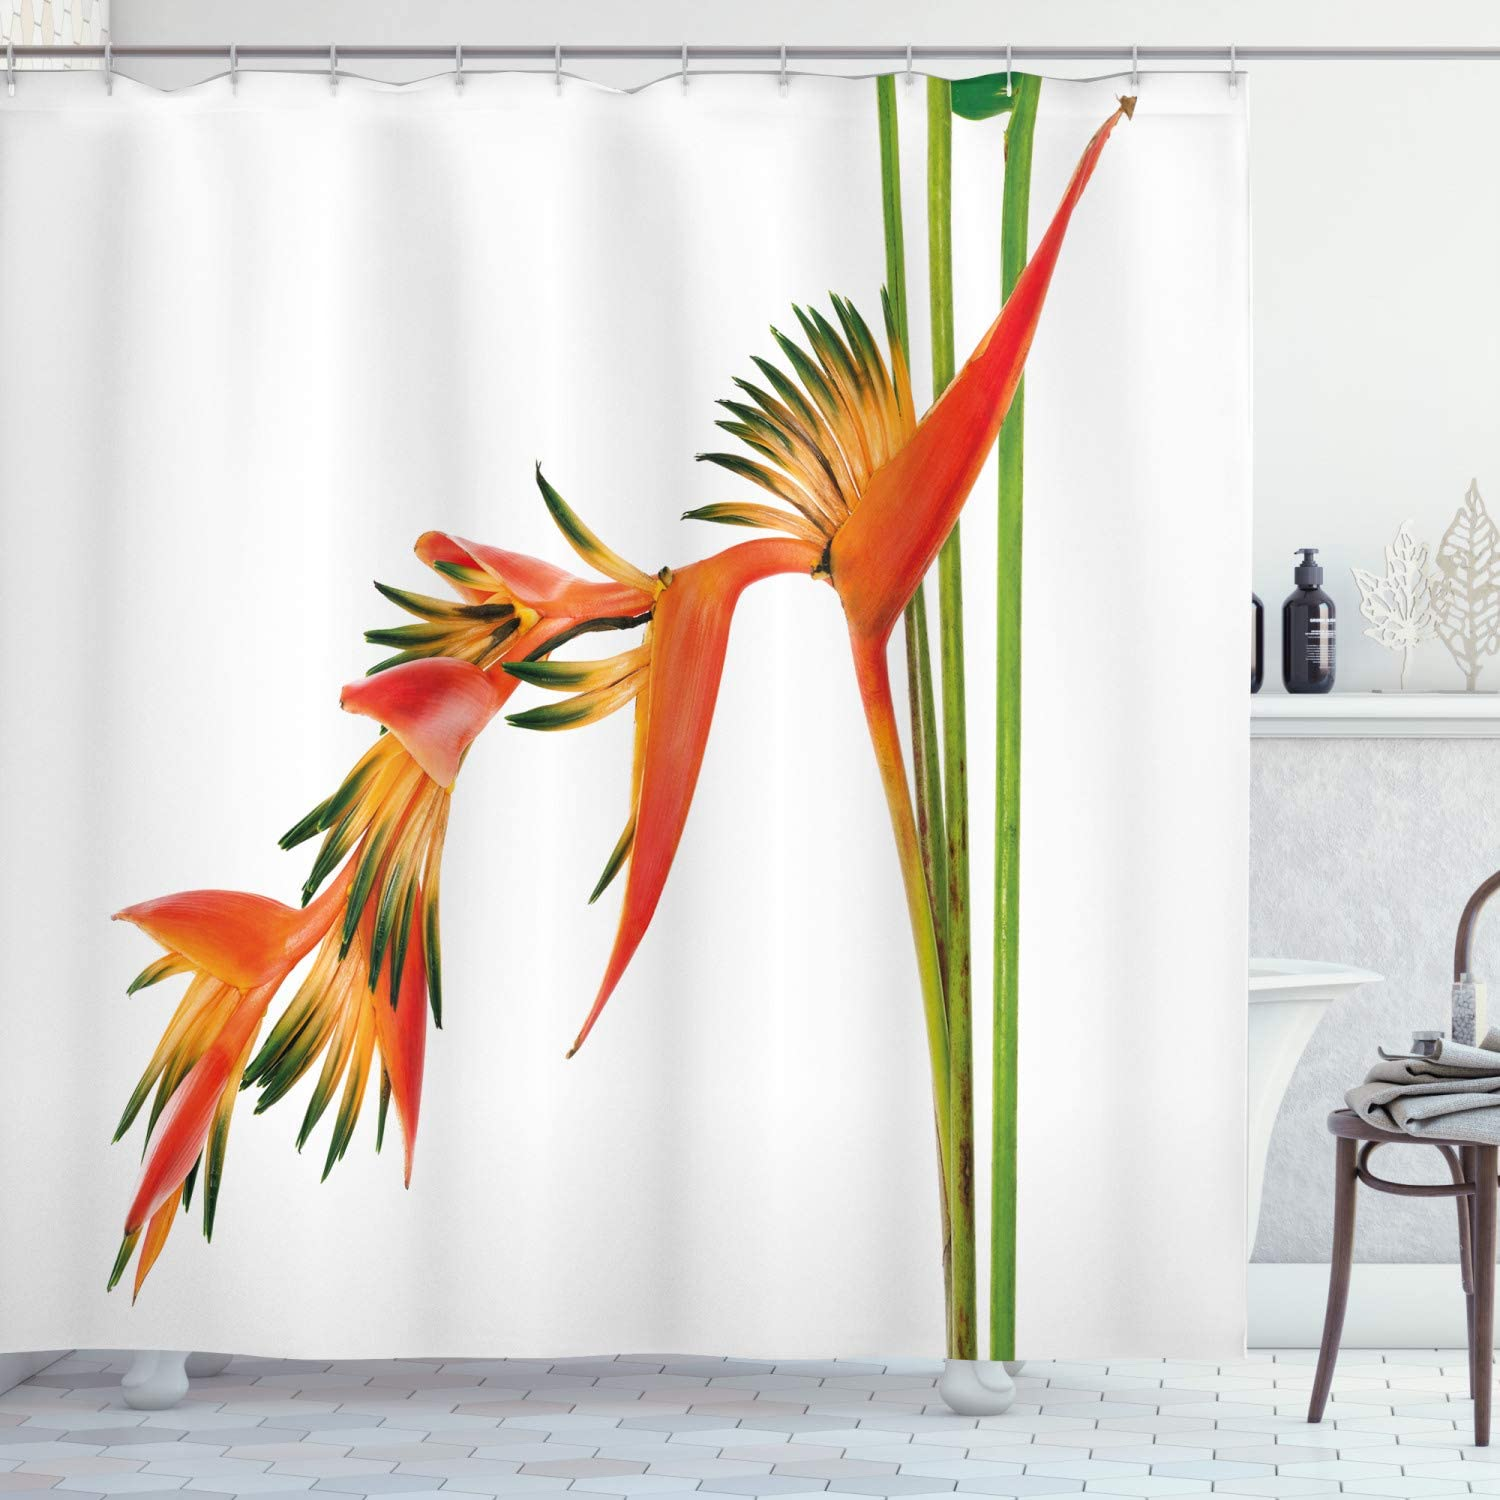 Ambesonne Floral Shower Curtain, Exotic Tropical Flowers on Branch Colorful Nature Jungle Garden Theme Image Print, Cloth Fabric Bathroom Decor Set with Hooks, 70